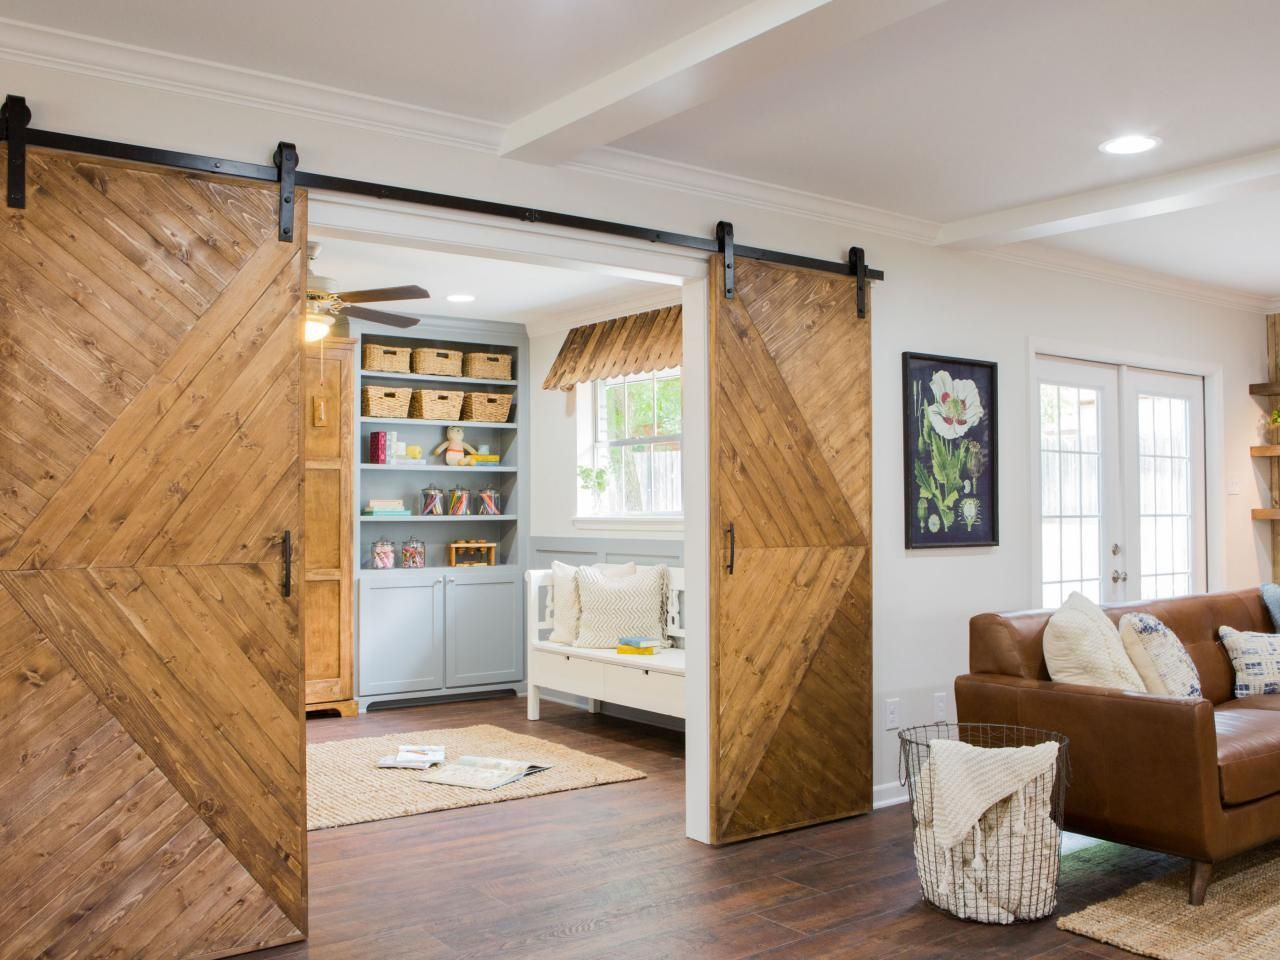 Now those are some barn doors. Modern and rustic. Nice ...